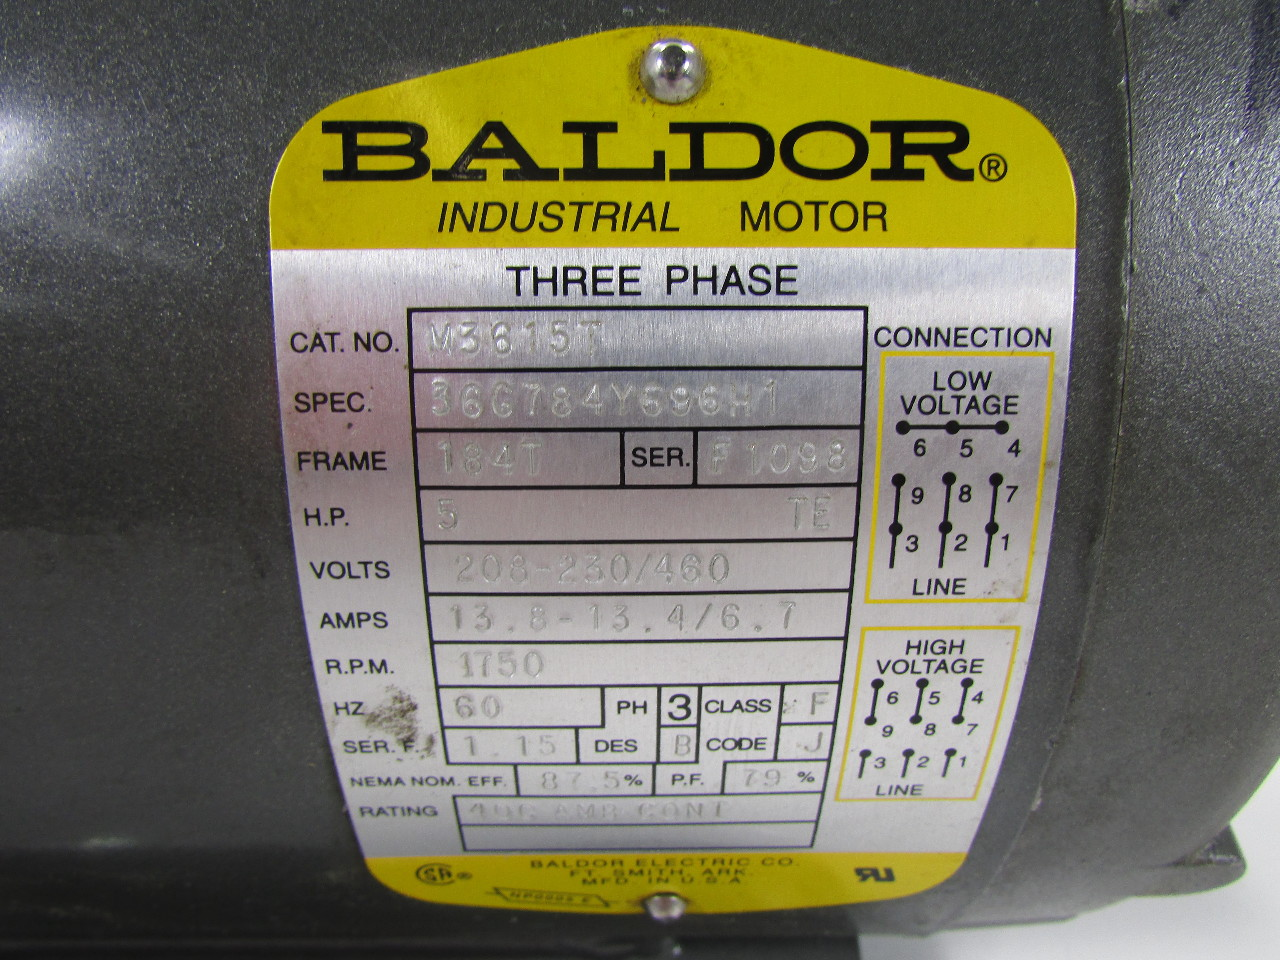 Baldor Reliance Motor Wiring Diagram 230 460